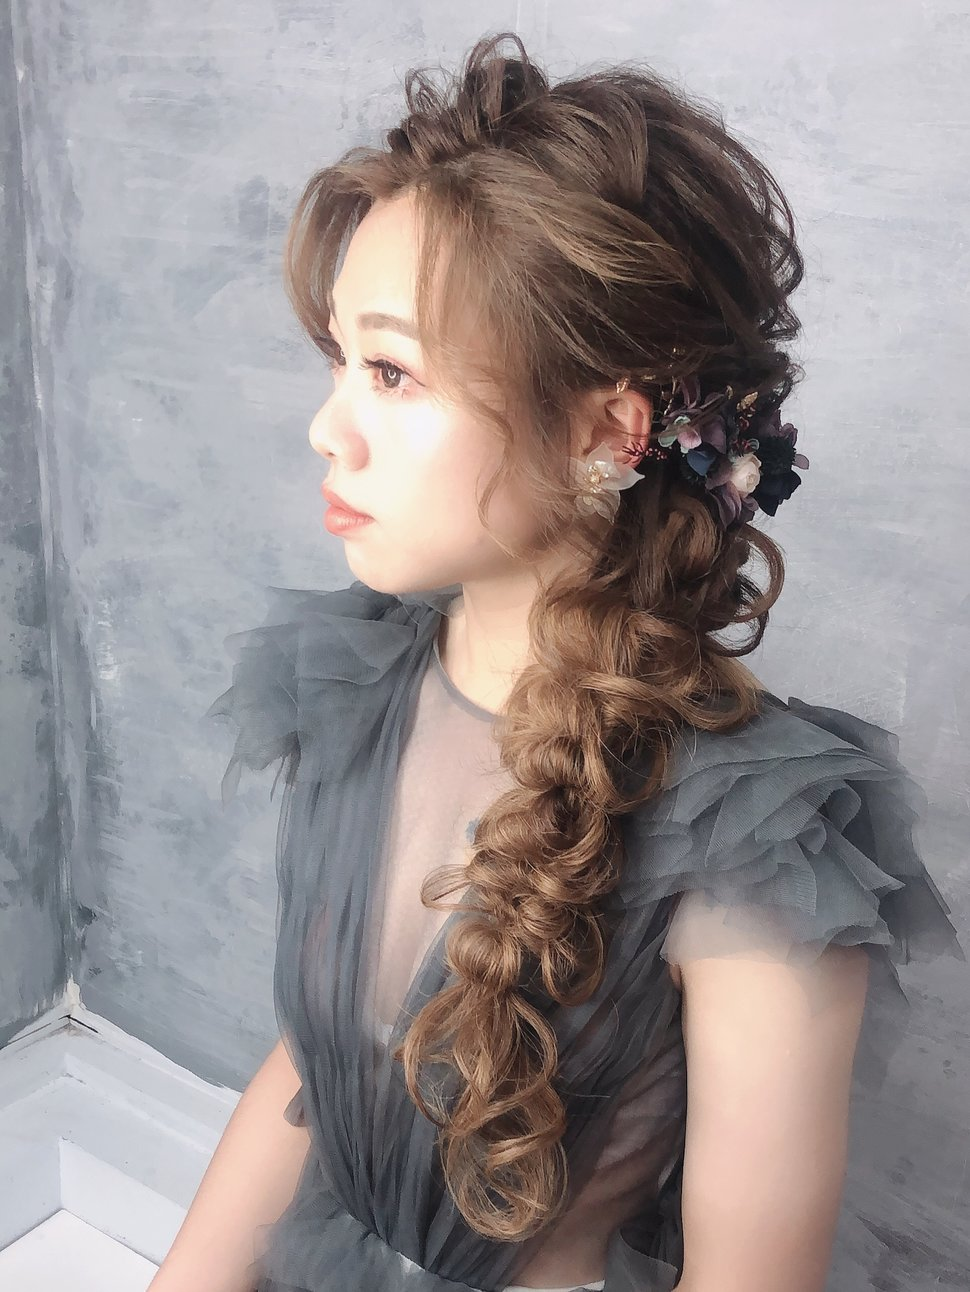 3F4BF2C4-465F-4A92-9B80-7AA00924D576 - Joanne make up《結婚吧》